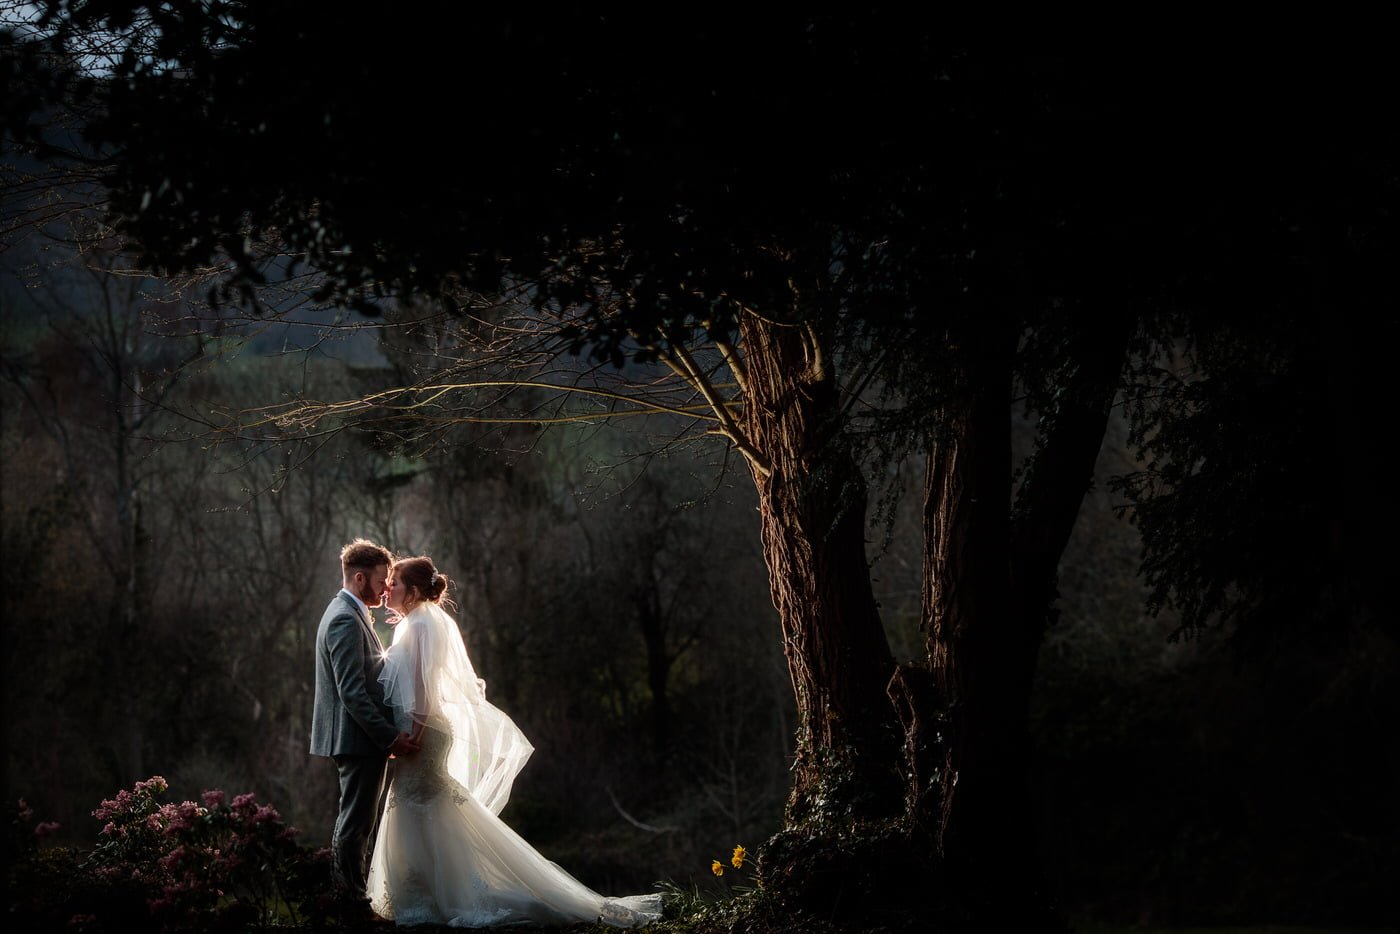 at a Tyn Dwr Hall Wedding a bride and groom share a tender moment